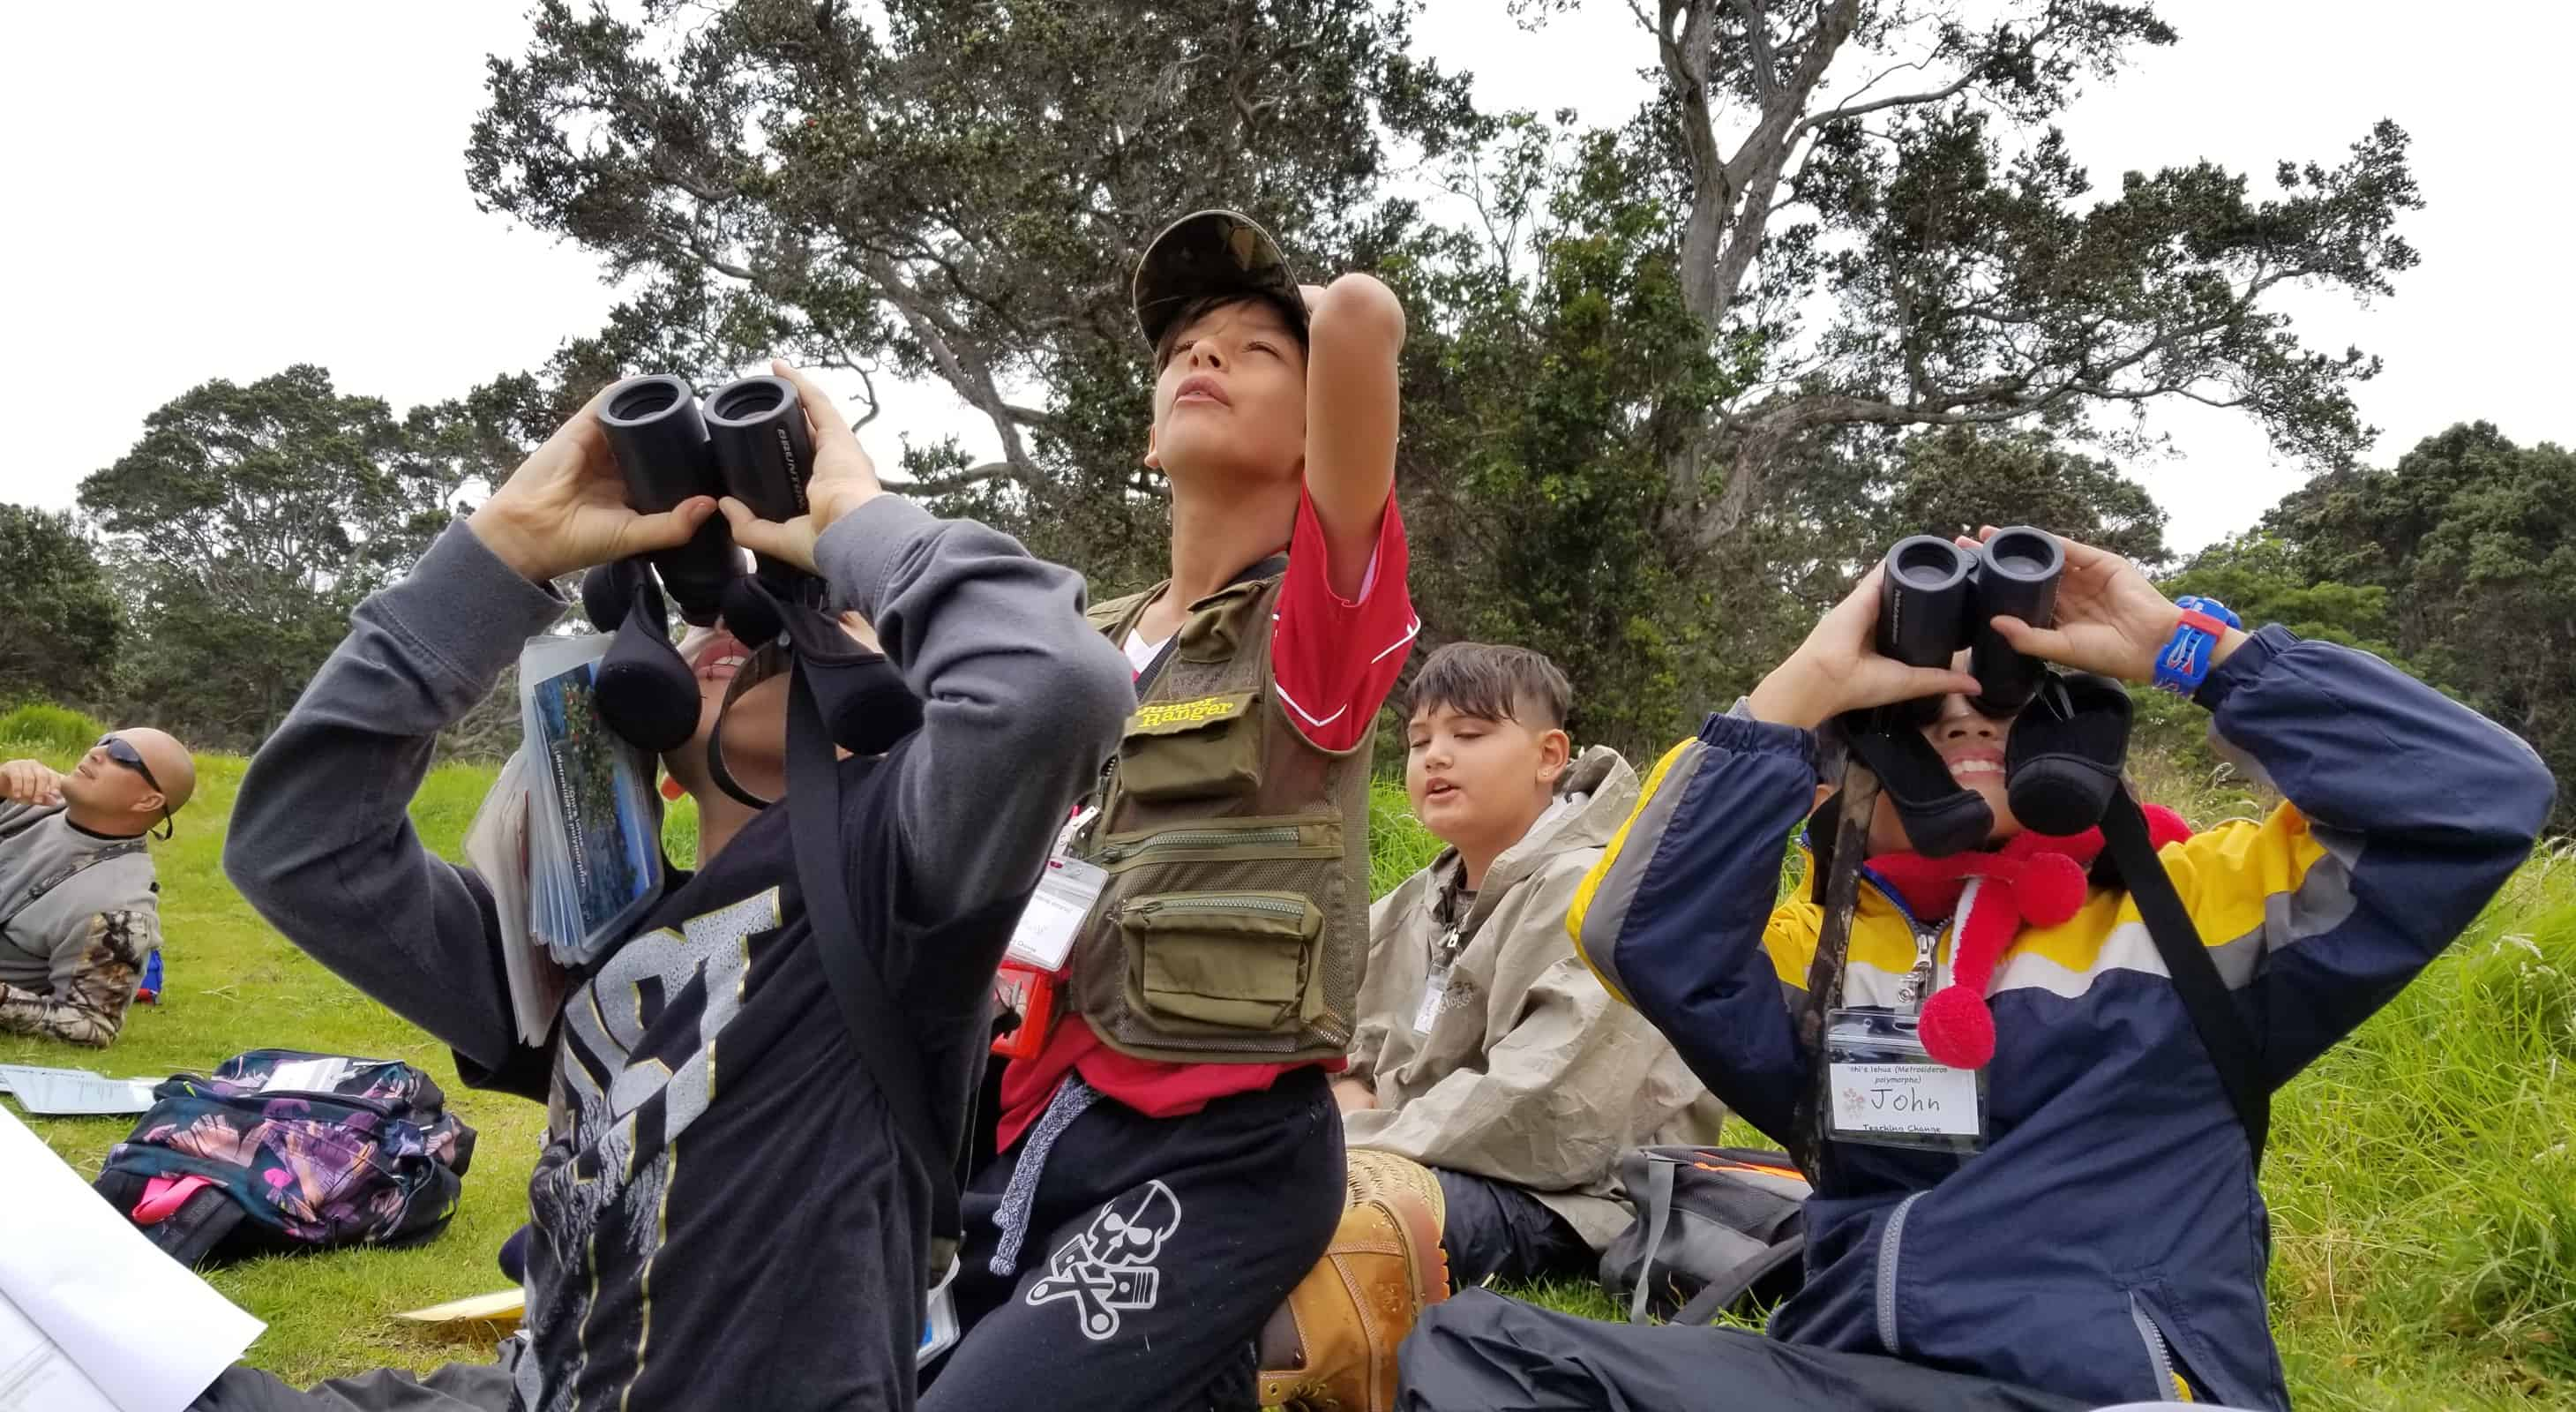 Students gather and look at birds through binoculars